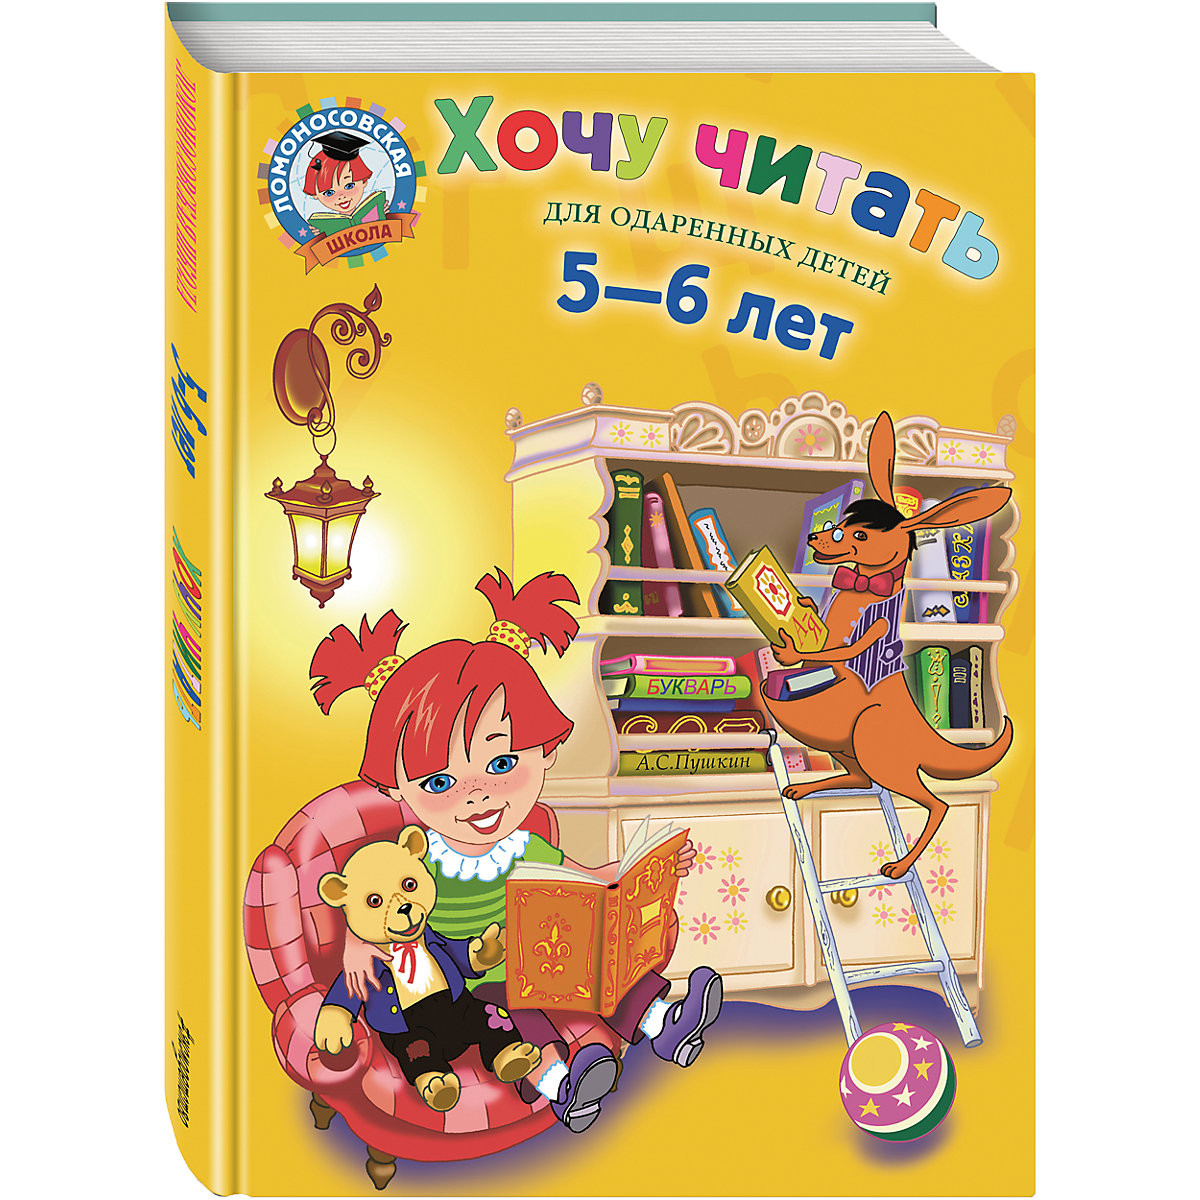 Books EKSMO 4753433 Children Education Encyclopedia Alphabet Dictionary Book For Baby MTpromo